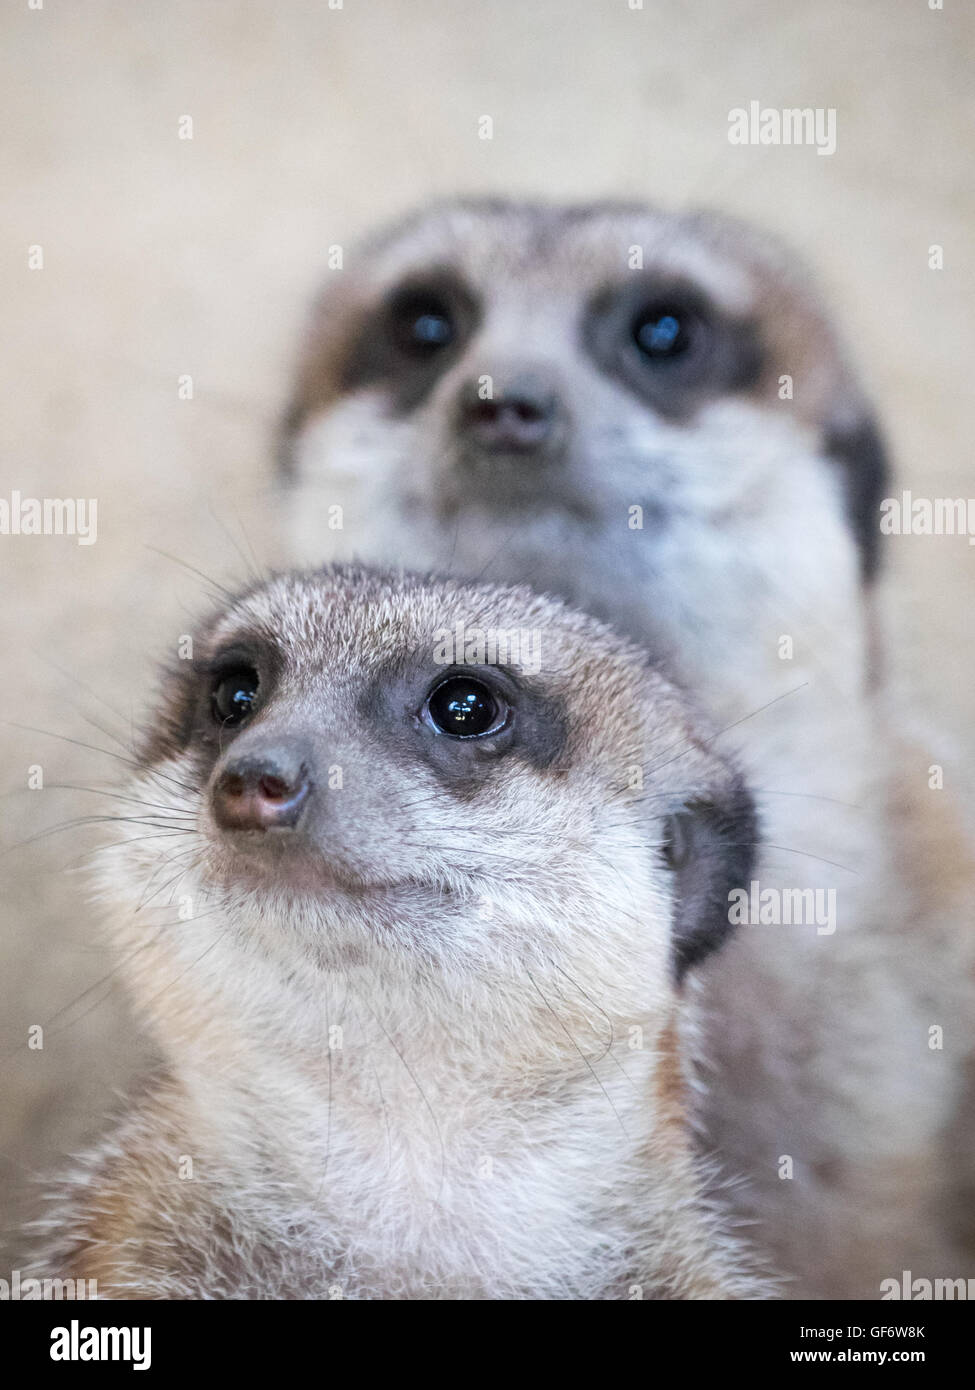 A meerkat (Suricata suricatta) pair, in captivity at the Calgary Zoo in Calgary, Alberta, Canada. - Stock Image